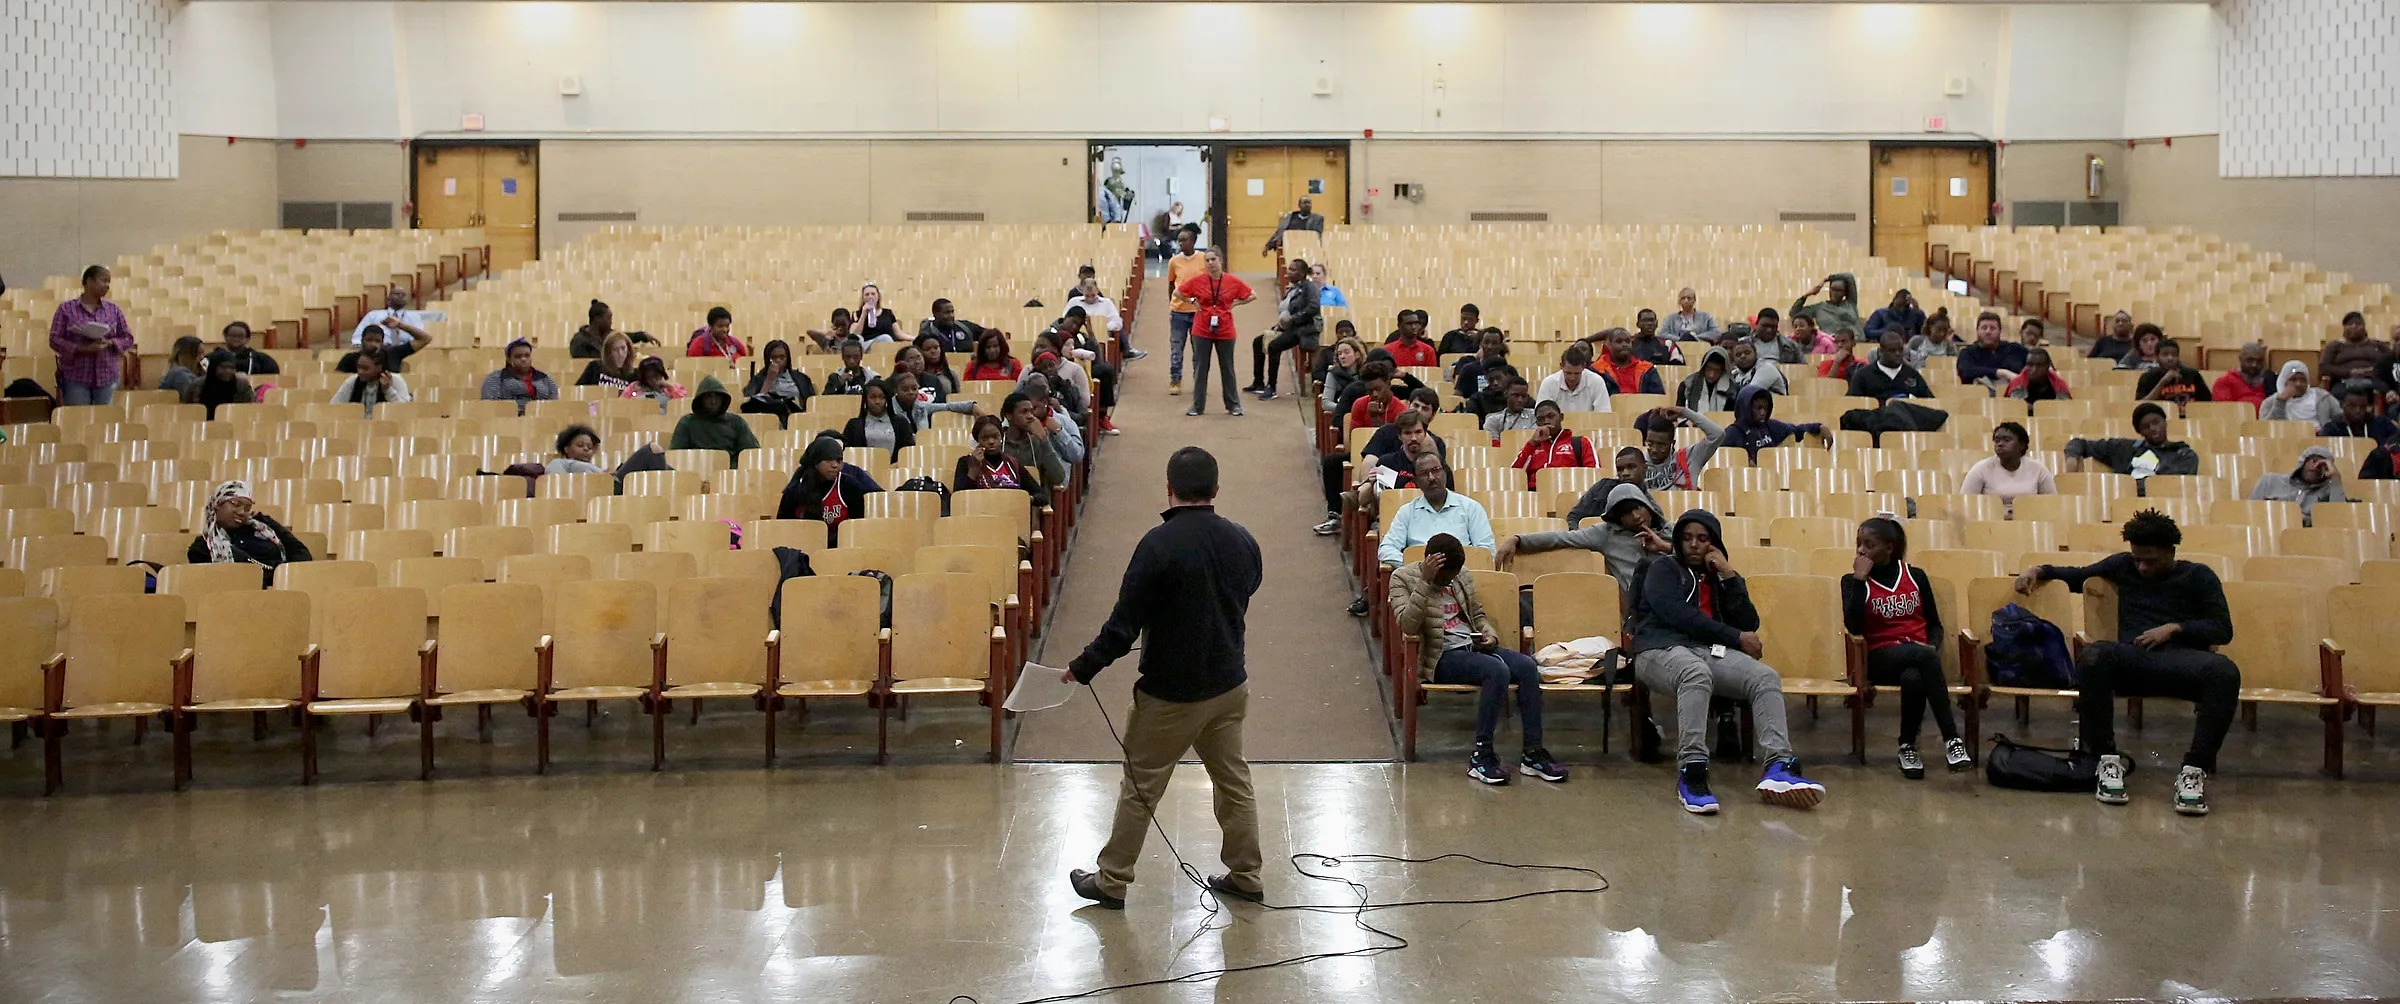 """Principal Brian McCracken, center, speaks during a monthly, schoolwide """"town hall"""" assembly at Strawberry Mansion High School in Philadelphia on Friday, Nov. 2, 2018. Some of the school's seniors were not present because they had early dismissal."""